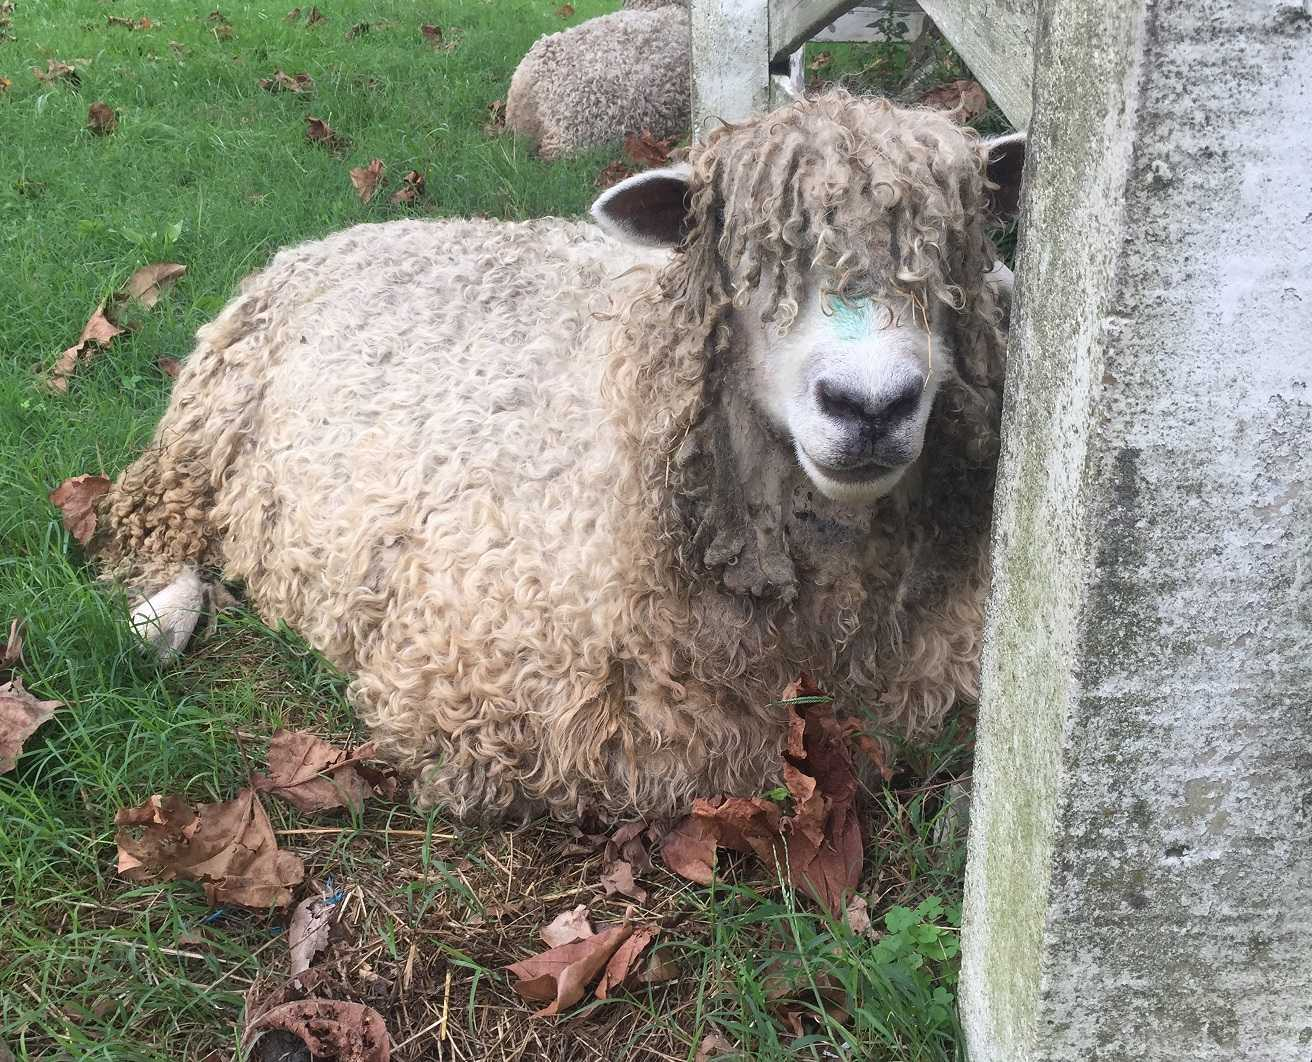 A sheep at Colonial Williamsburg represents the millions of animals that Supermeat could save lives.